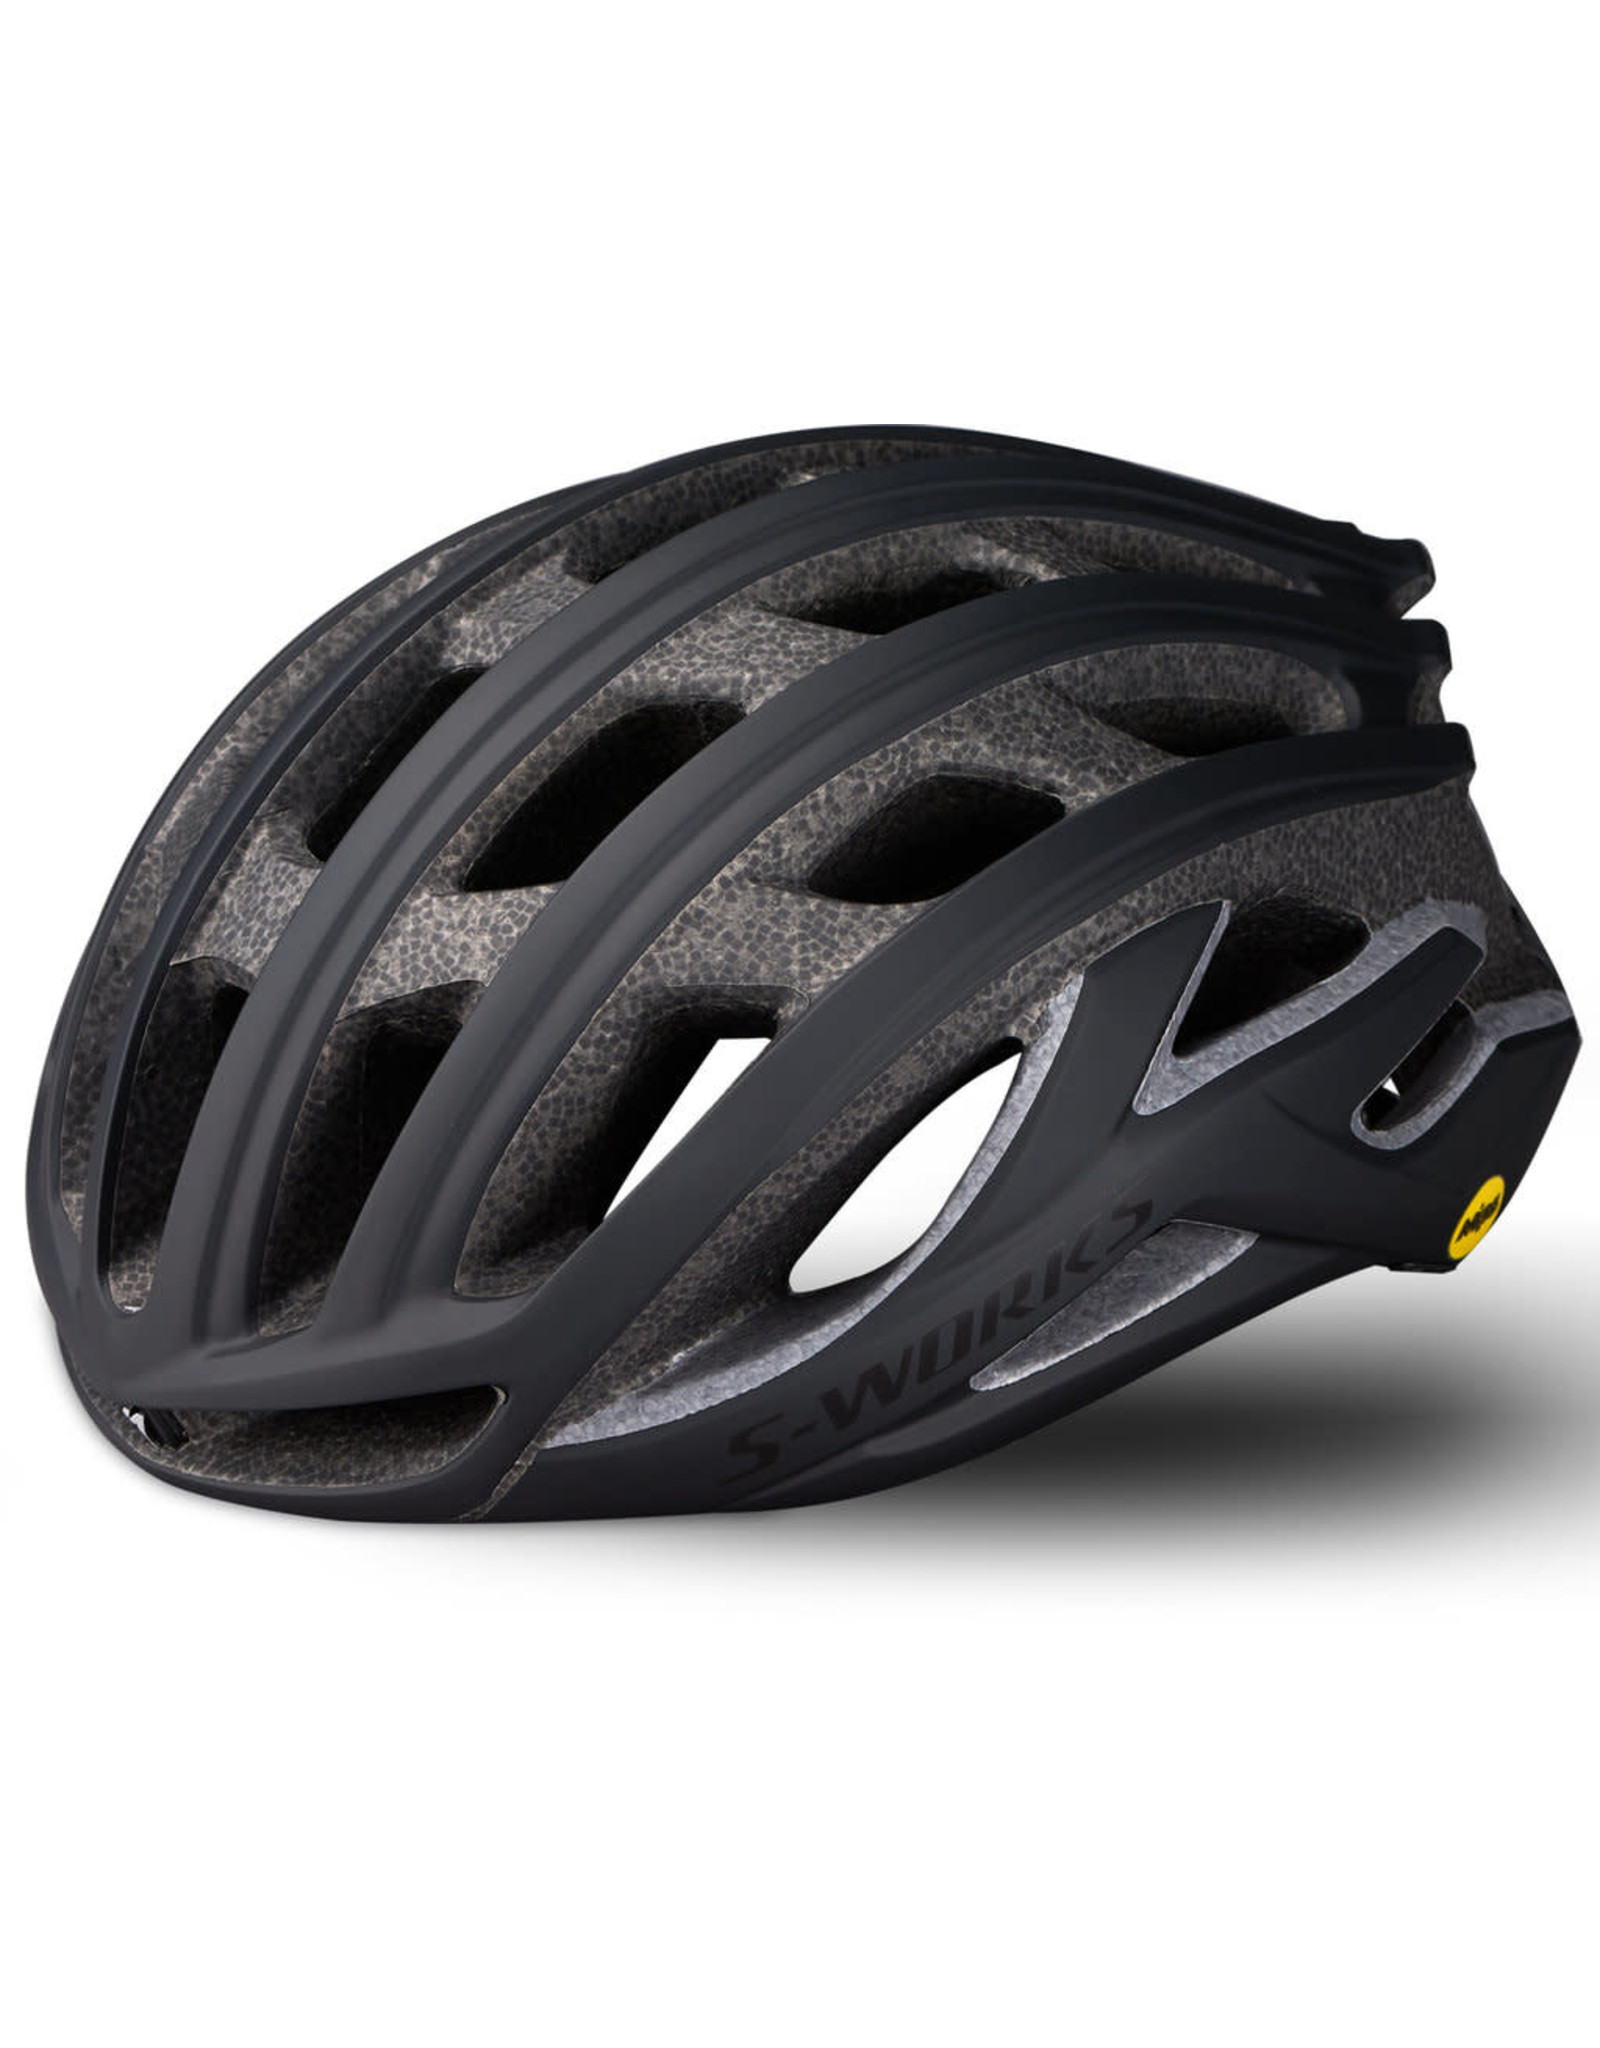 SPECIALIZED SW PREVAIL II HLMT ANGI MIPS CPSC BLK M